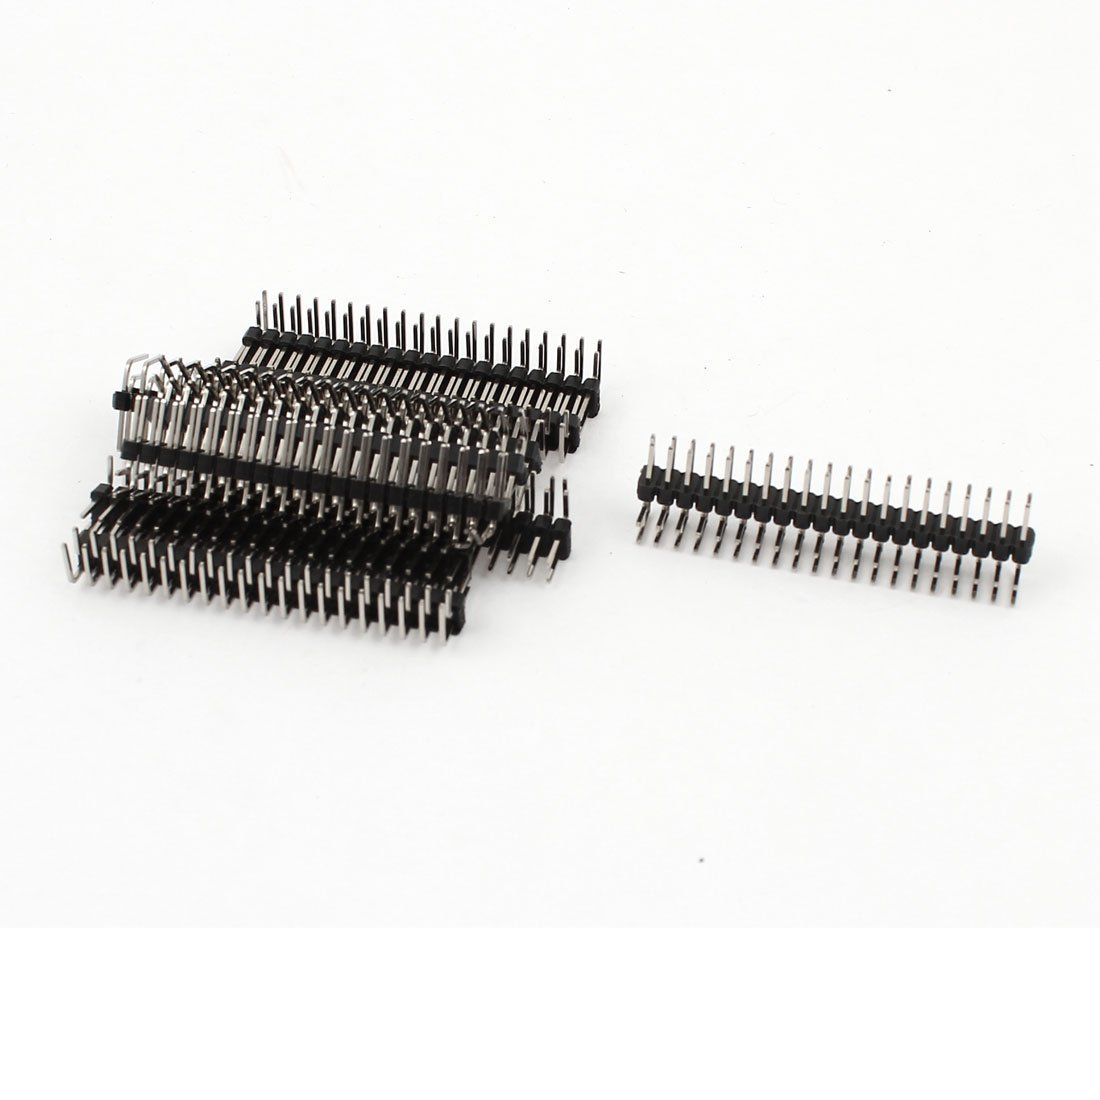 Sourcingmap 10PCS 2.54mm 2 x 20-pin Male Double Row Right Angle Pin Header Strip a15010500ux0918